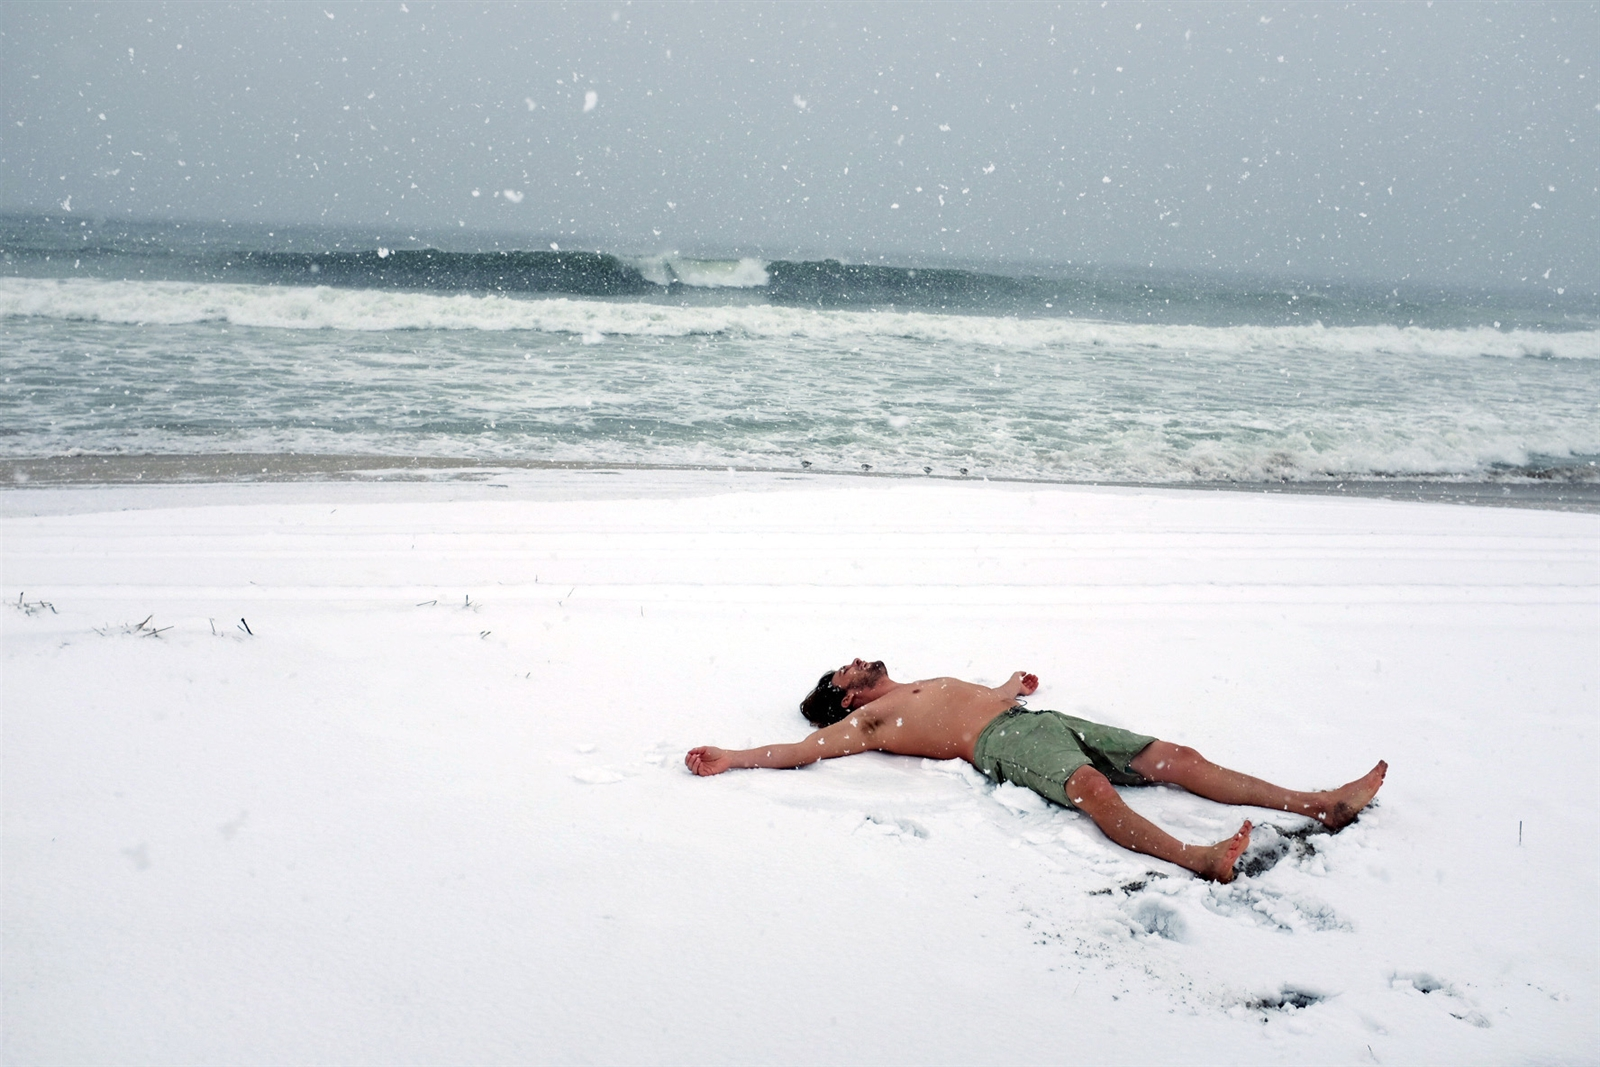 obby Reynolds lies on the snowy beach before surfing at Rockaway Beach during a snow storm March 21, 2018 in the Queens borough of New York.  New York City and much of New England has experienced four Nor'easter winter storms in recent weeks.